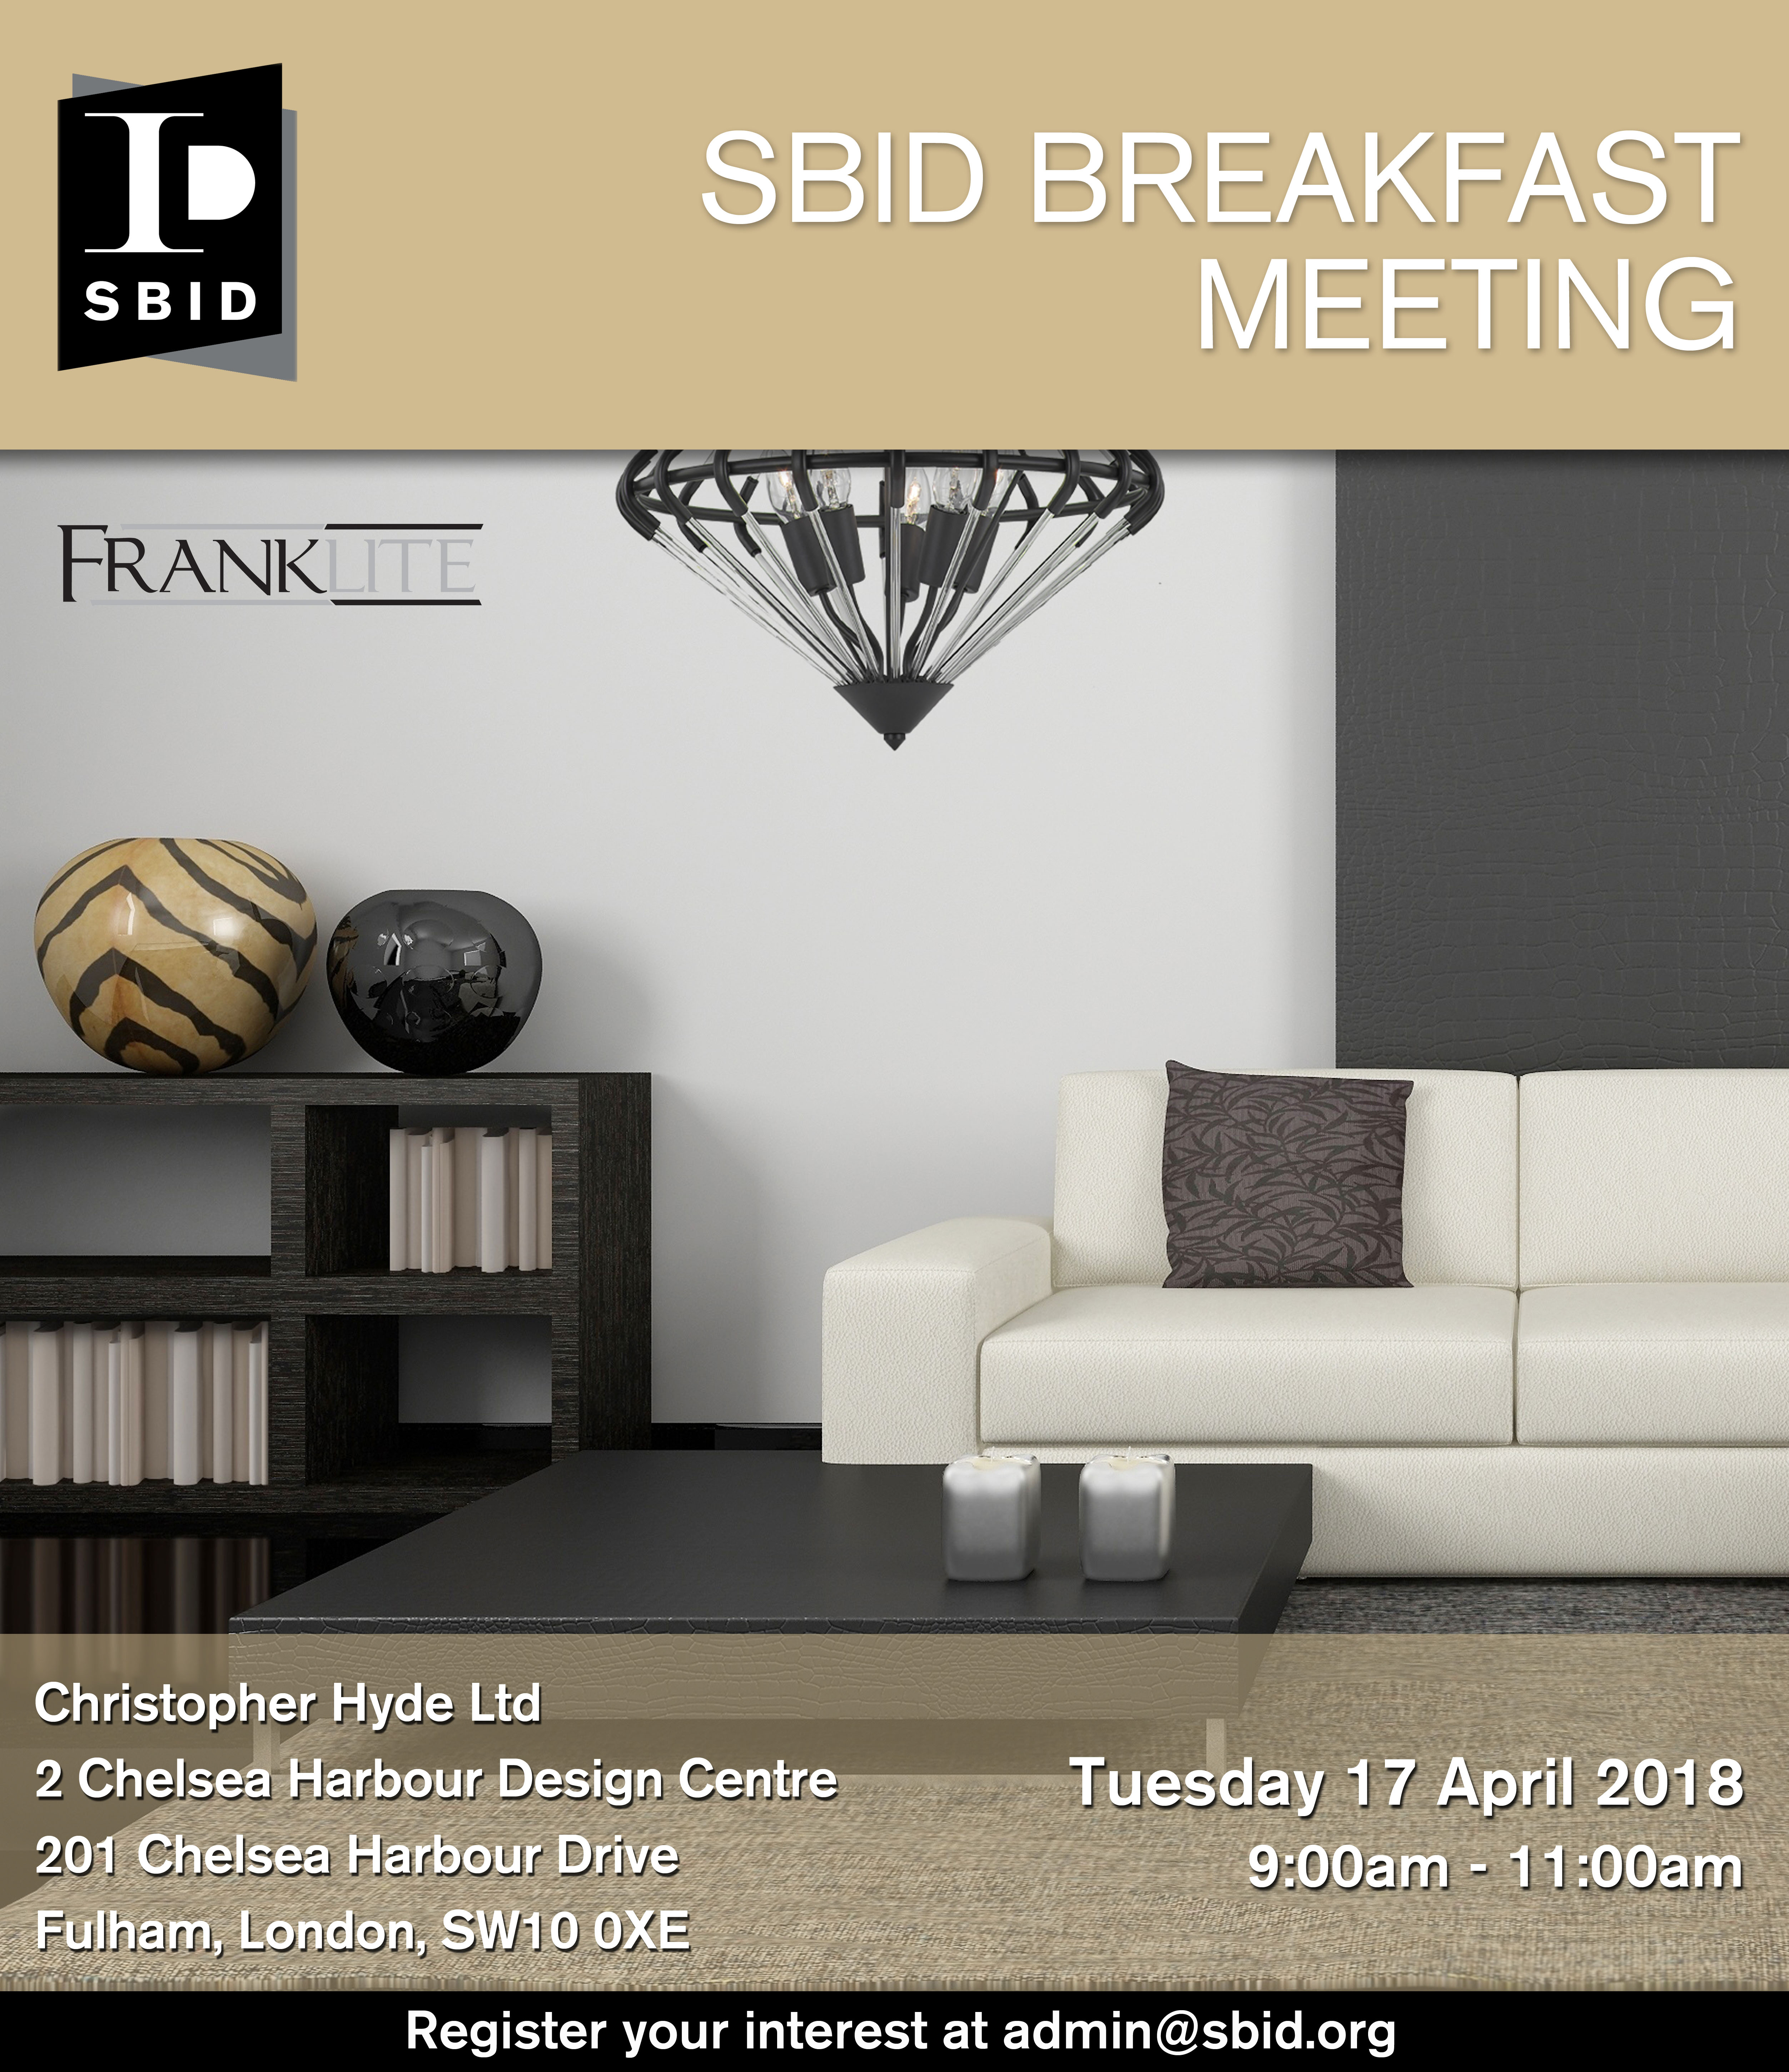 SBID Interior Design Business Breakfast Meeting Invitation